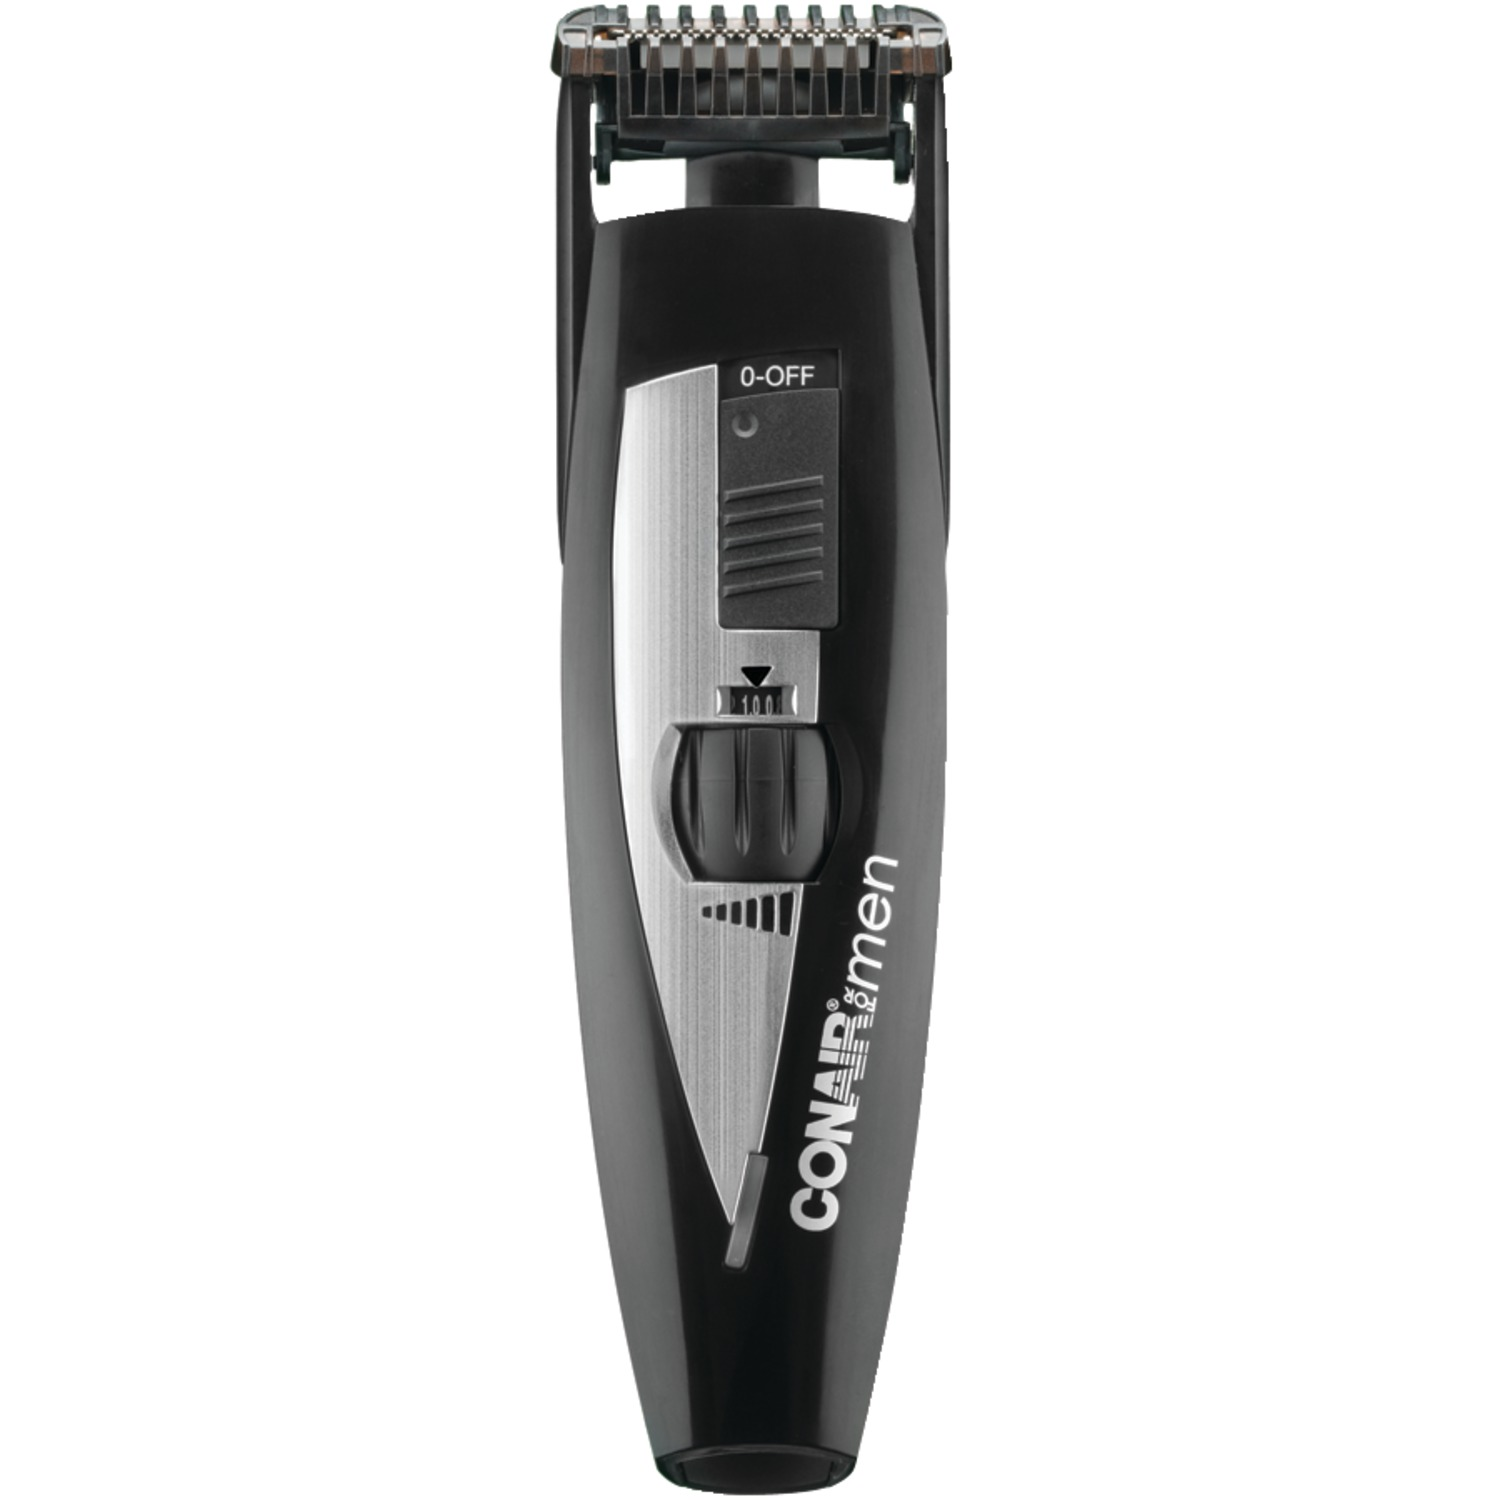 conair gmt880 stubble all in one cordless trimmer. Black Bedroom Furniture Sets. Home Design Ideas